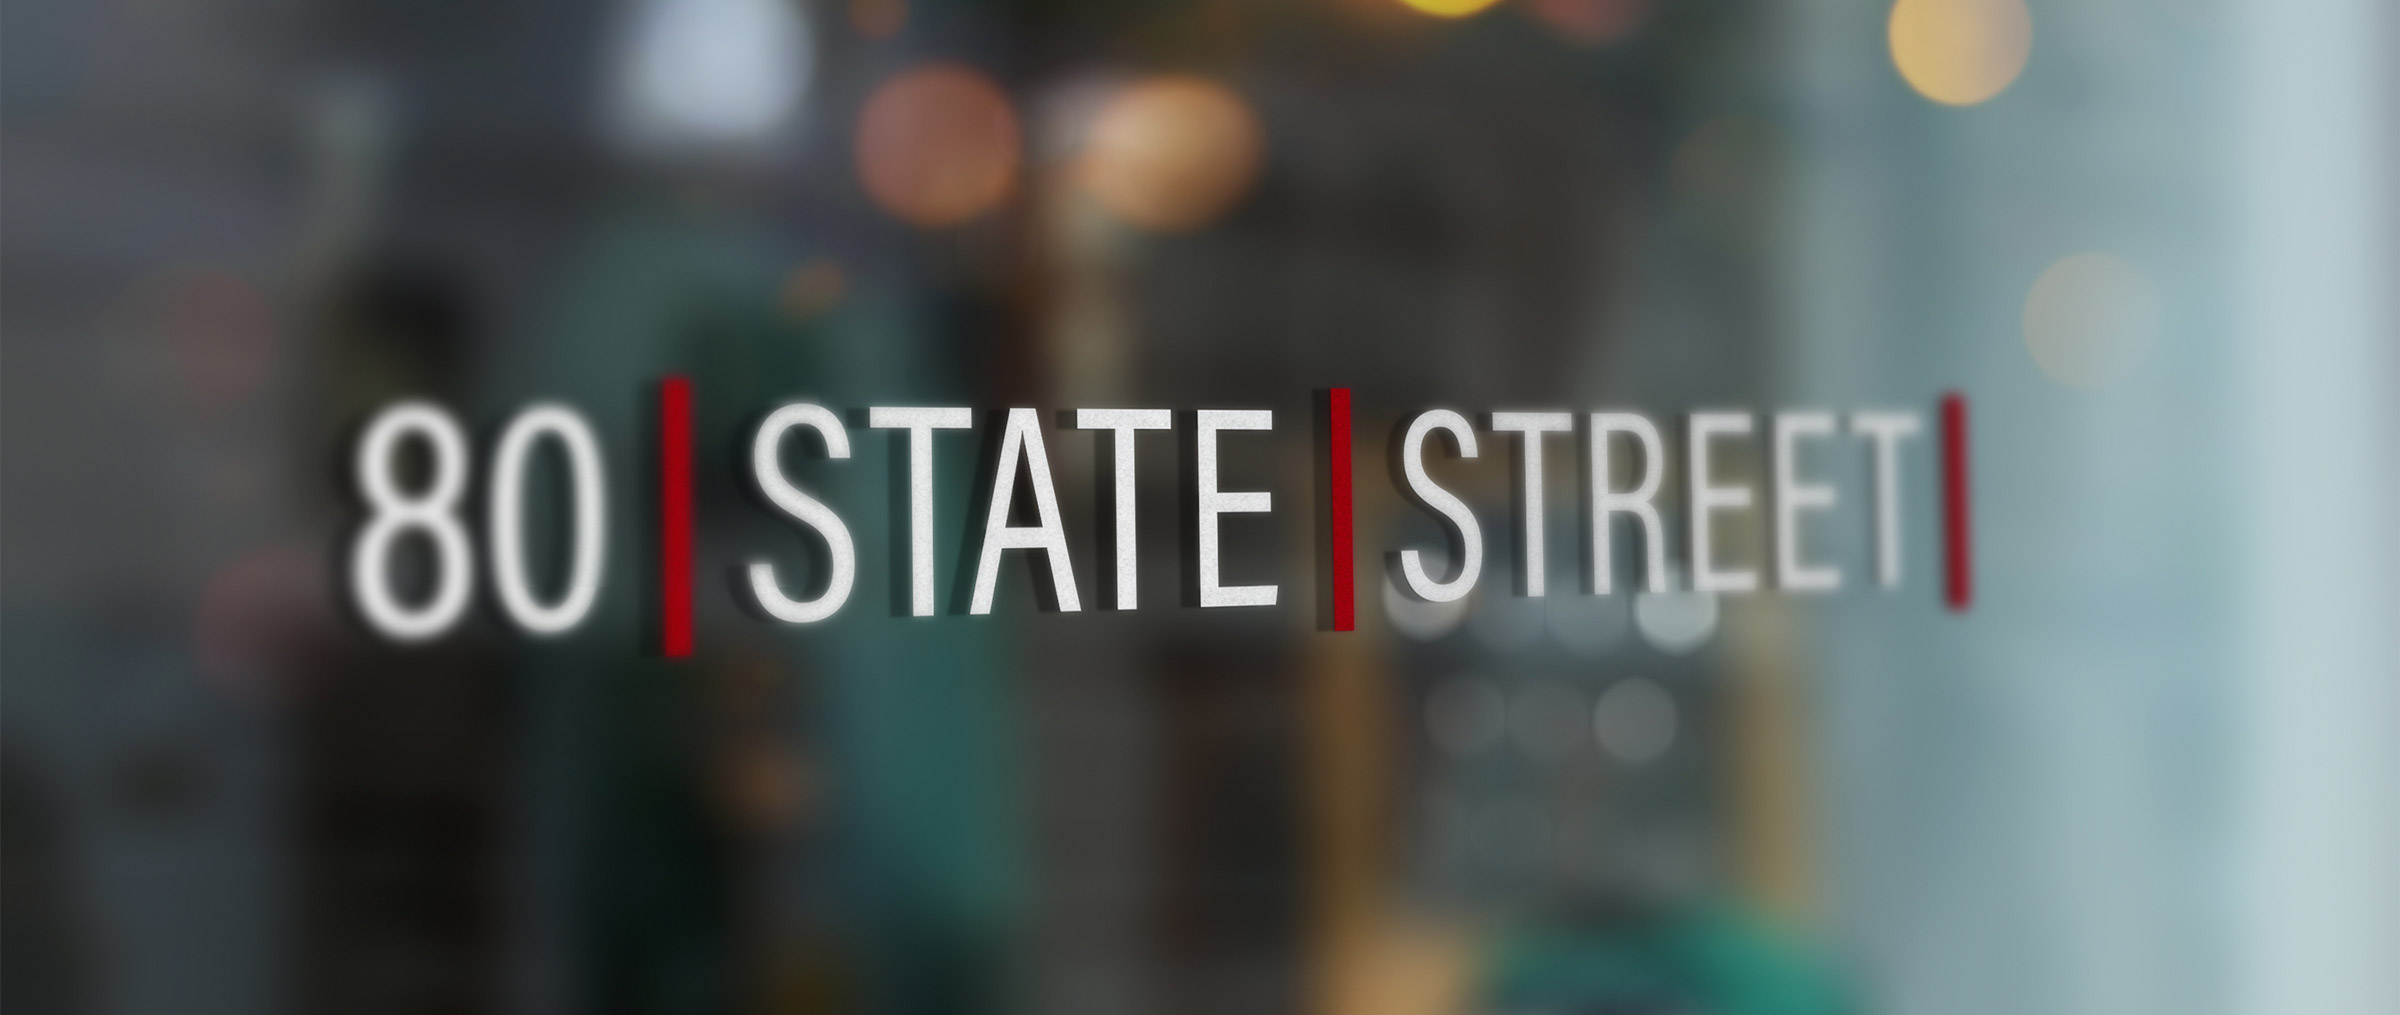 80 state street sign